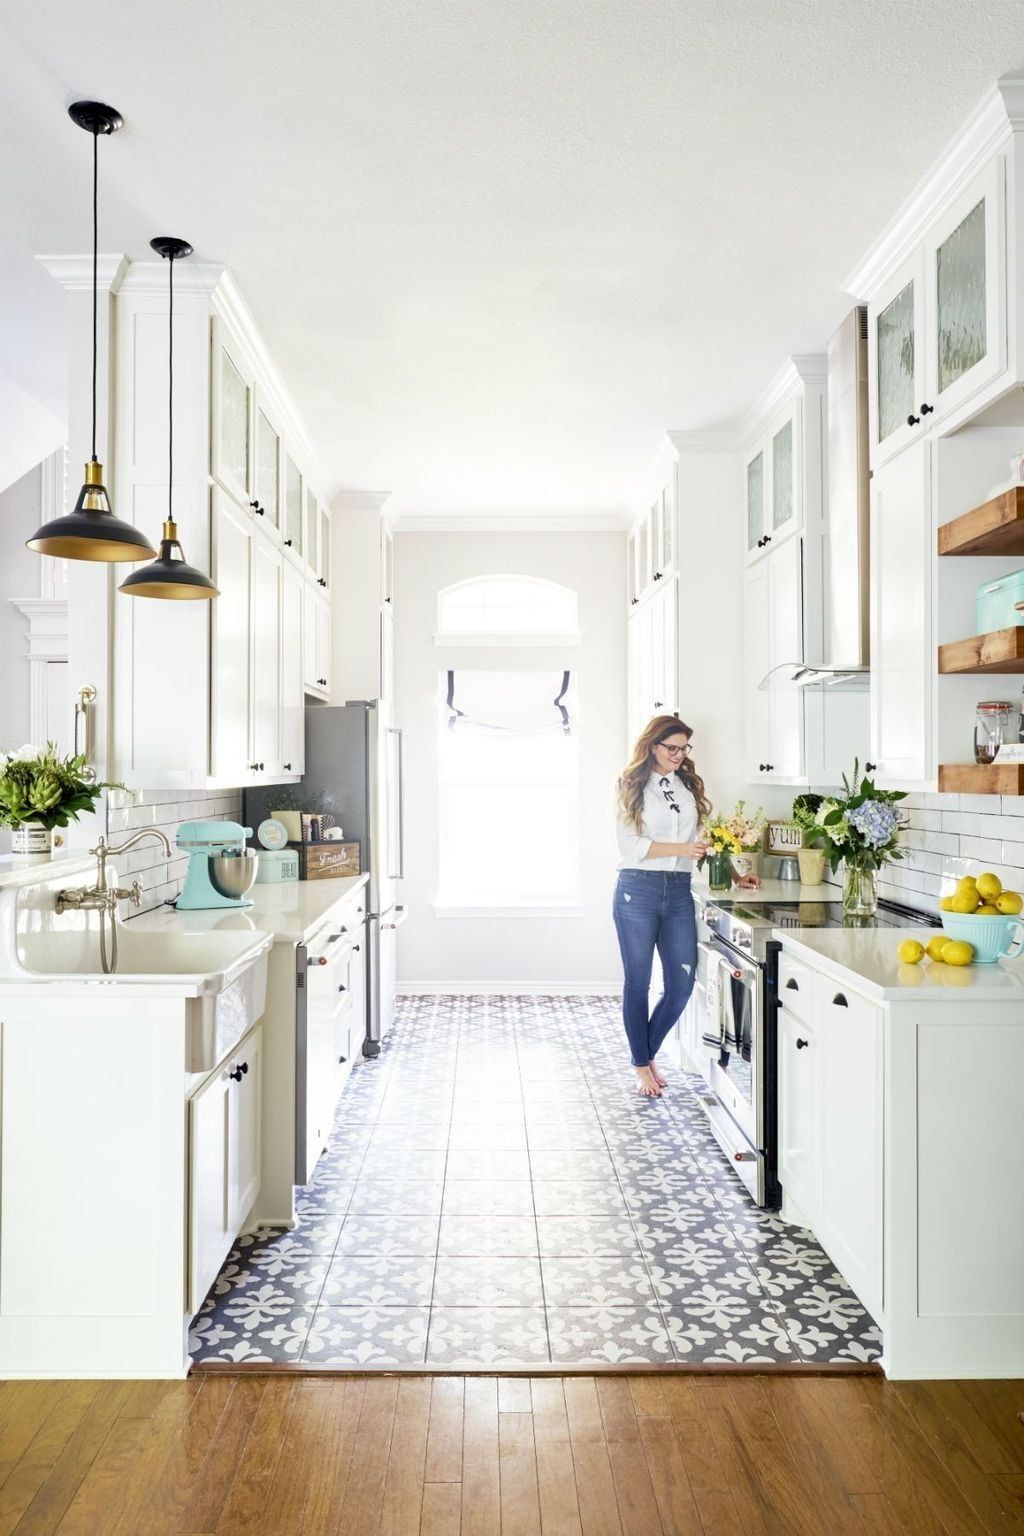 33 fancy home kitchen design ideas that have an elegant looks in 2020 with images kitchen on kitchen ideas elegant id=80672